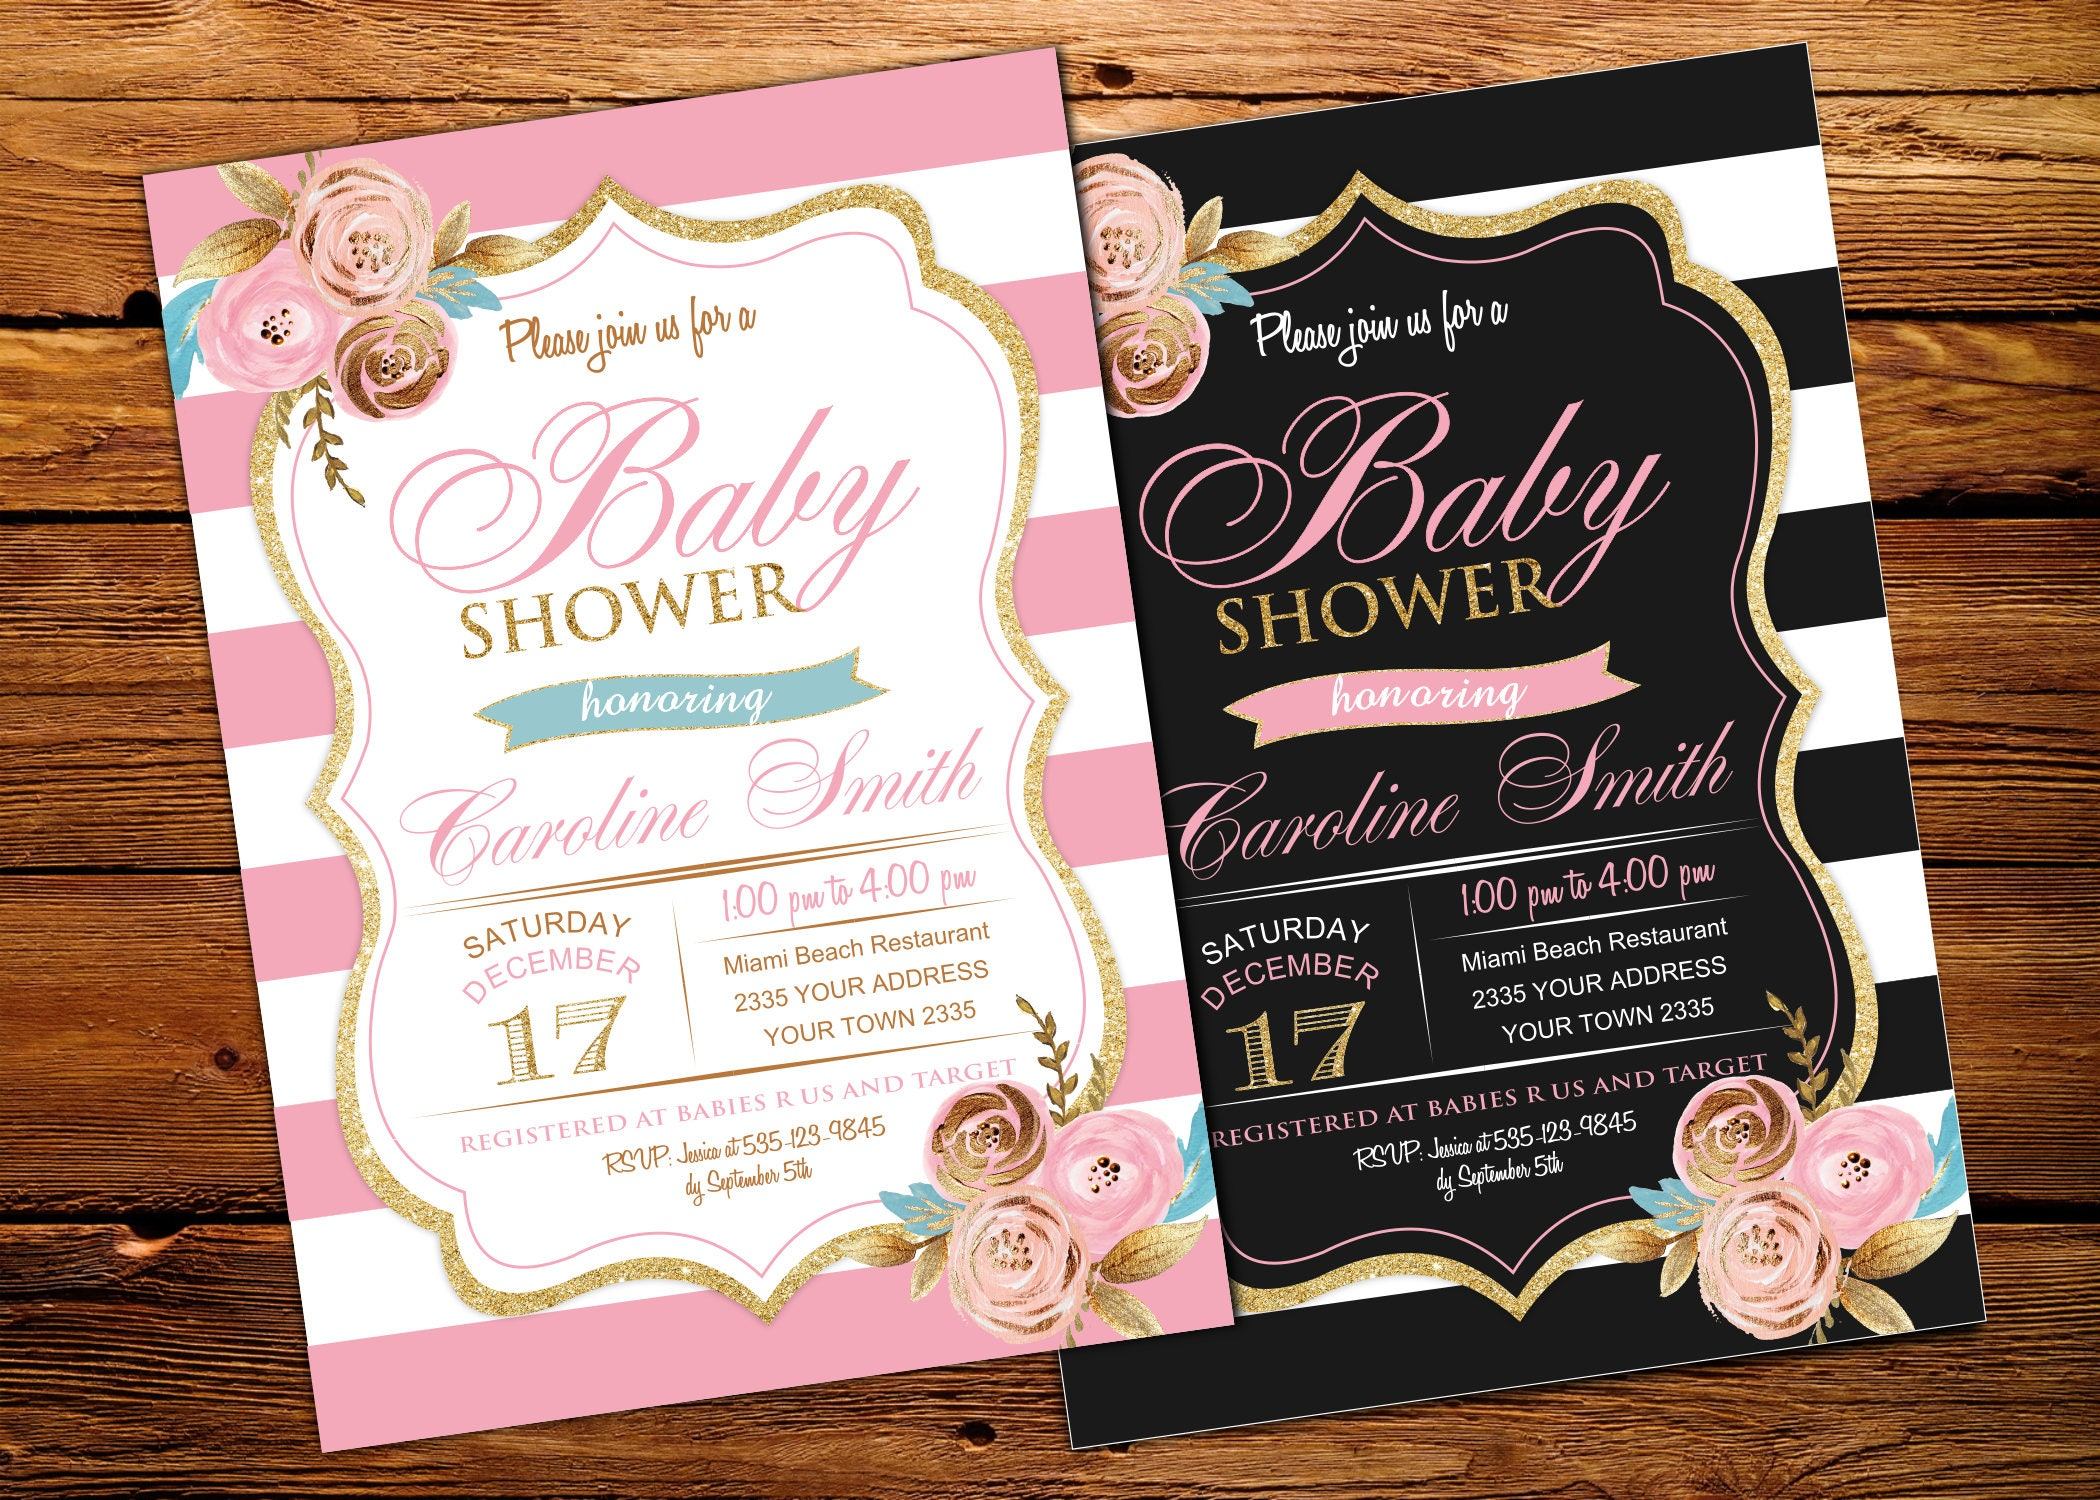 Baby Shower Invitations. Pink and Gold Baby Shower